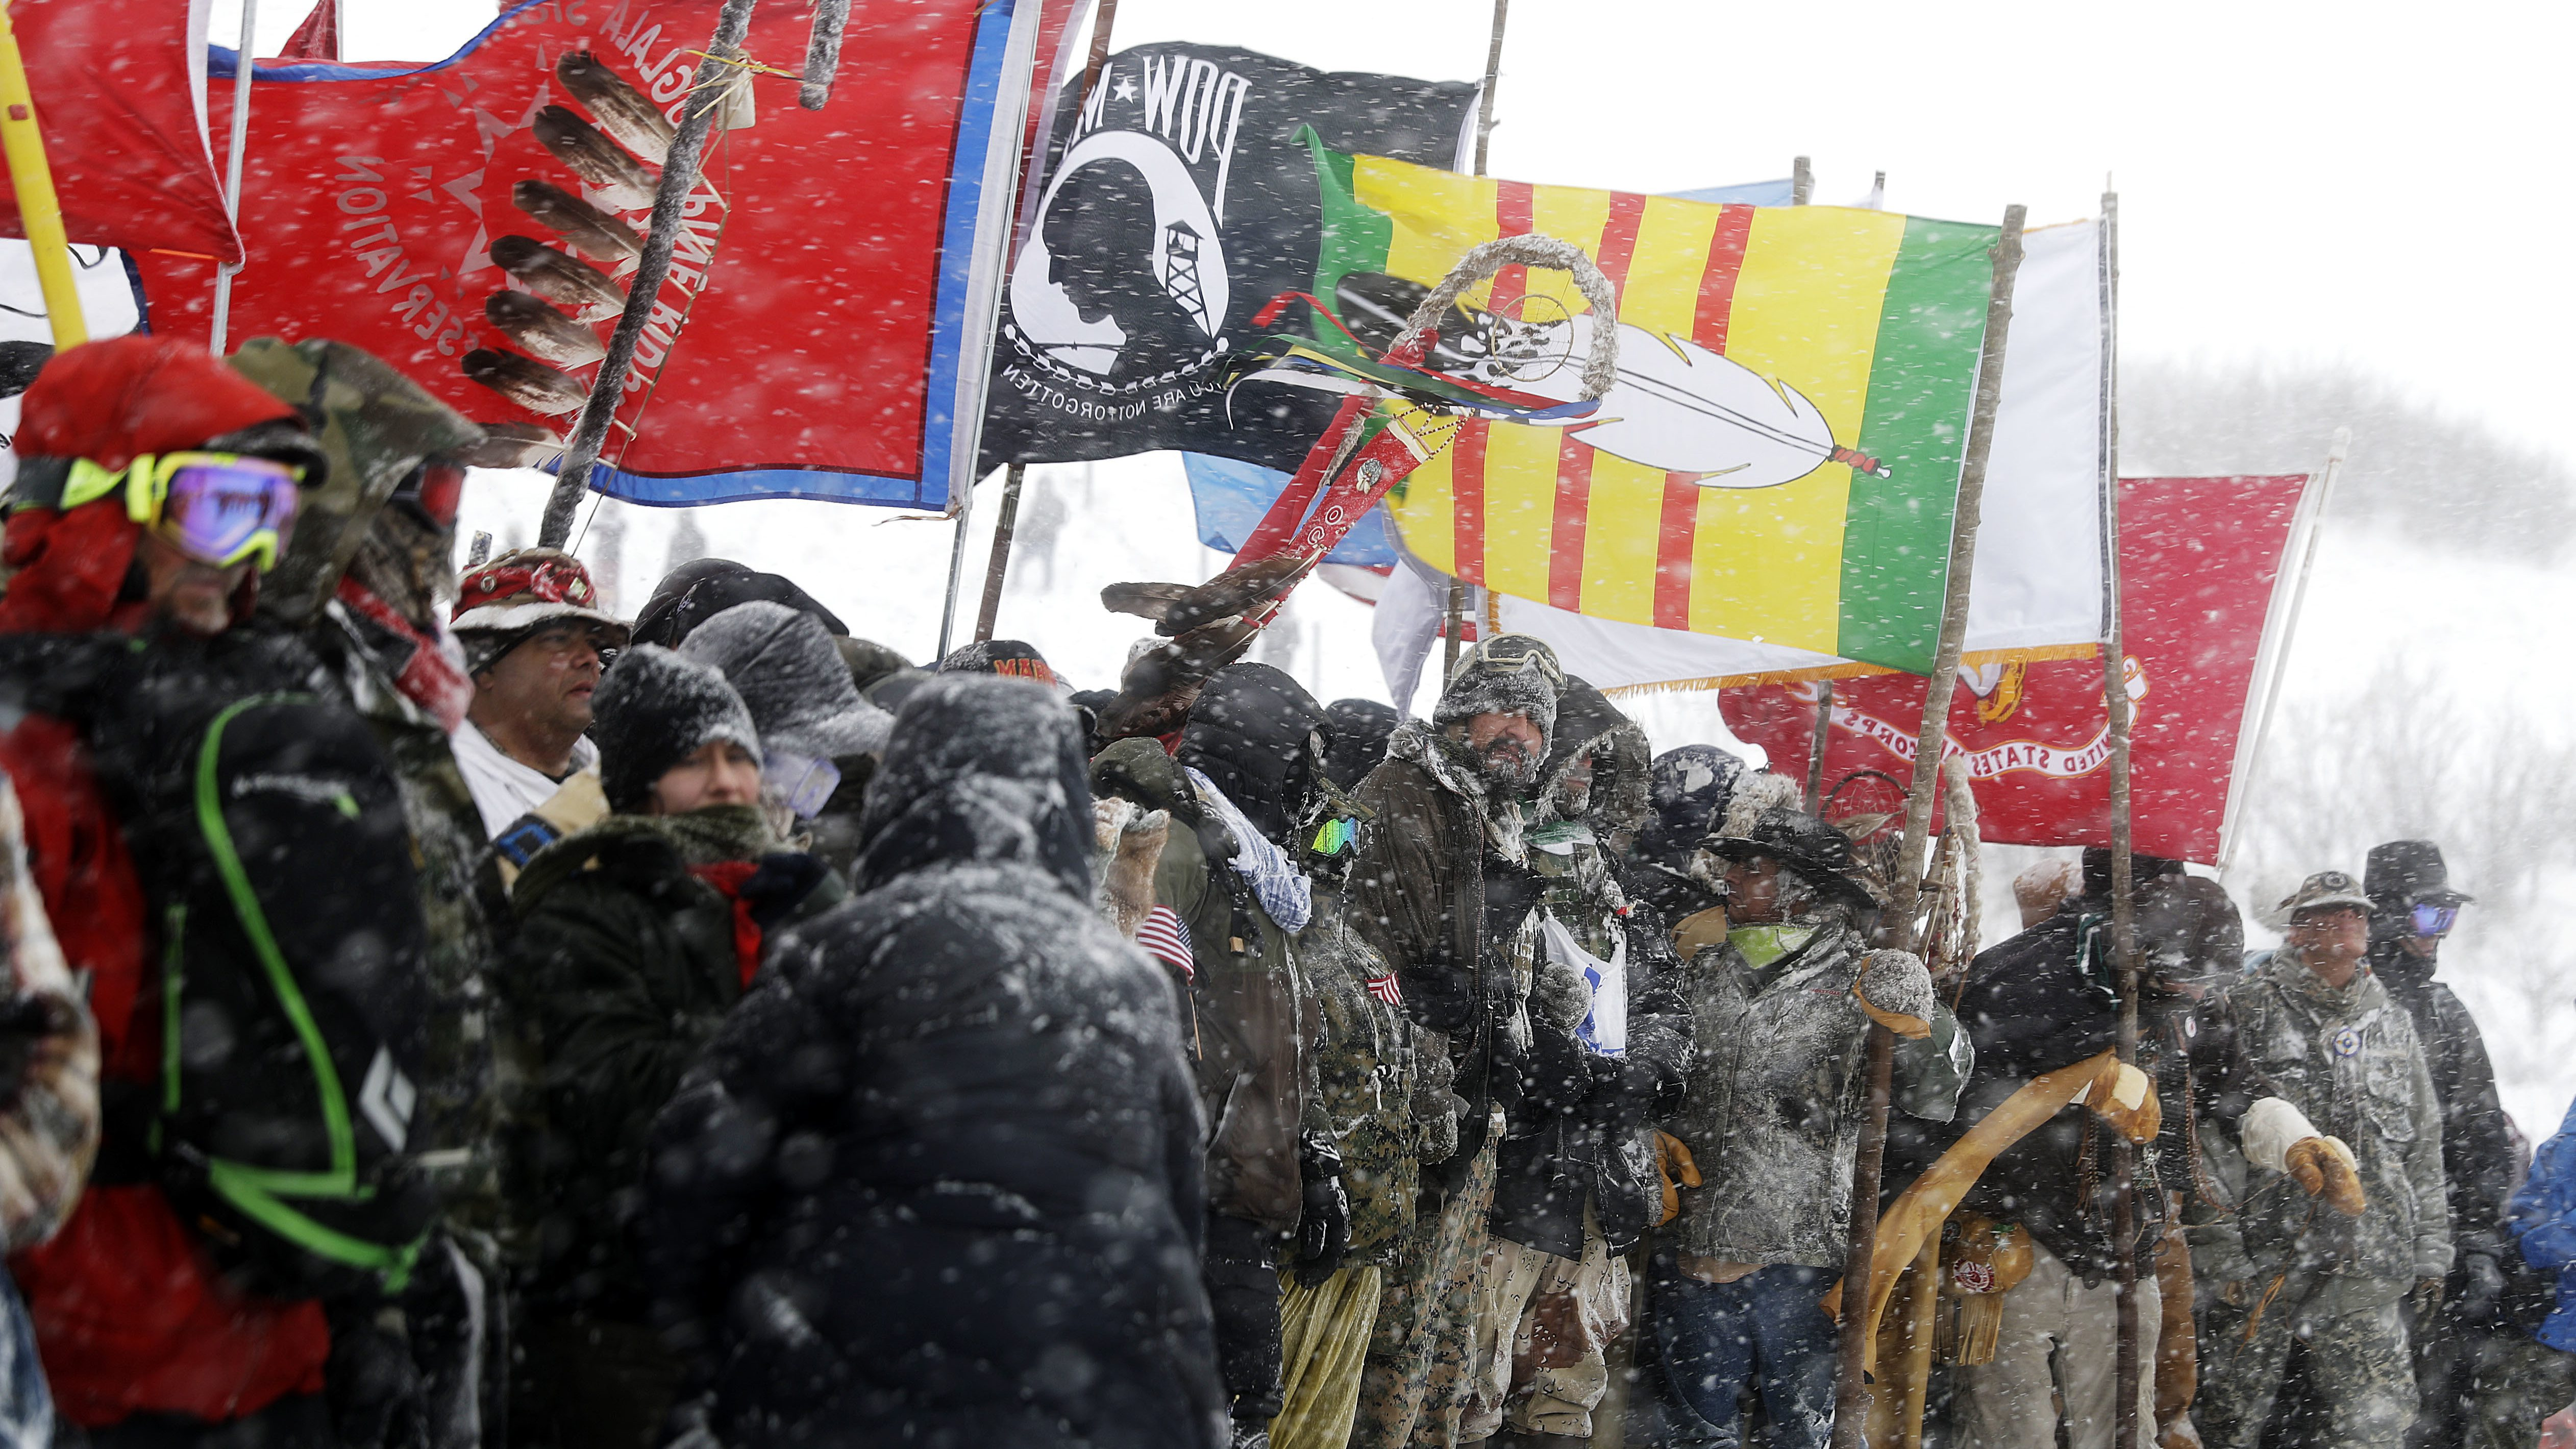 In this Dec. 5, 2016, file photo, military veterans and Native American tribal elders come to a stop for a ceremonial prayer during a march to a closed bridge across from the Dakota Access oil pipeline site in Cannon Ball, N.D. Some Native Americans worry the transition to a Donald Trump administration signals an end to eight years of sweeping Indian Country policy reforms. But Trump's Native American supporters said they're hopeful he will cut through some of the government red tape that they believe has stifled economic progress on reservations.